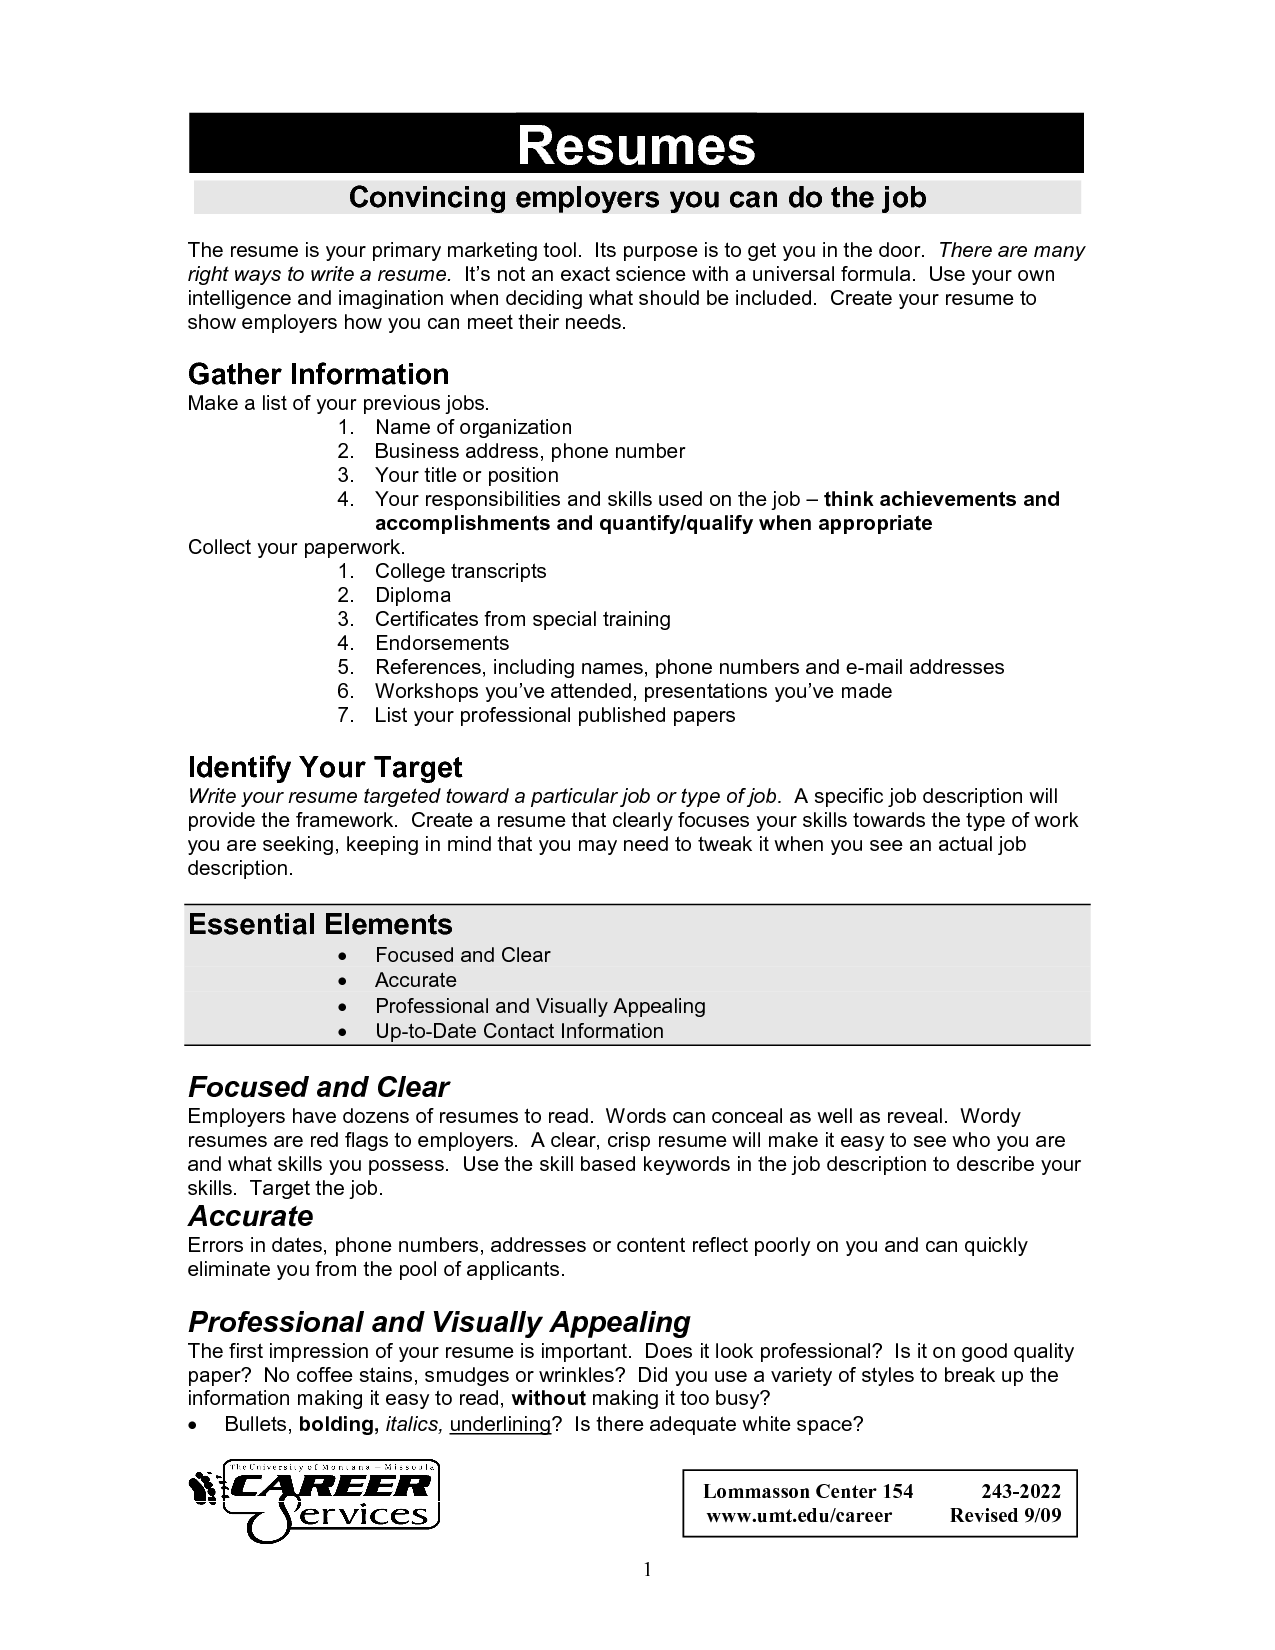 What Good Free Resume Builder Templates And Best Writing Software  How To Write A Resume For Job